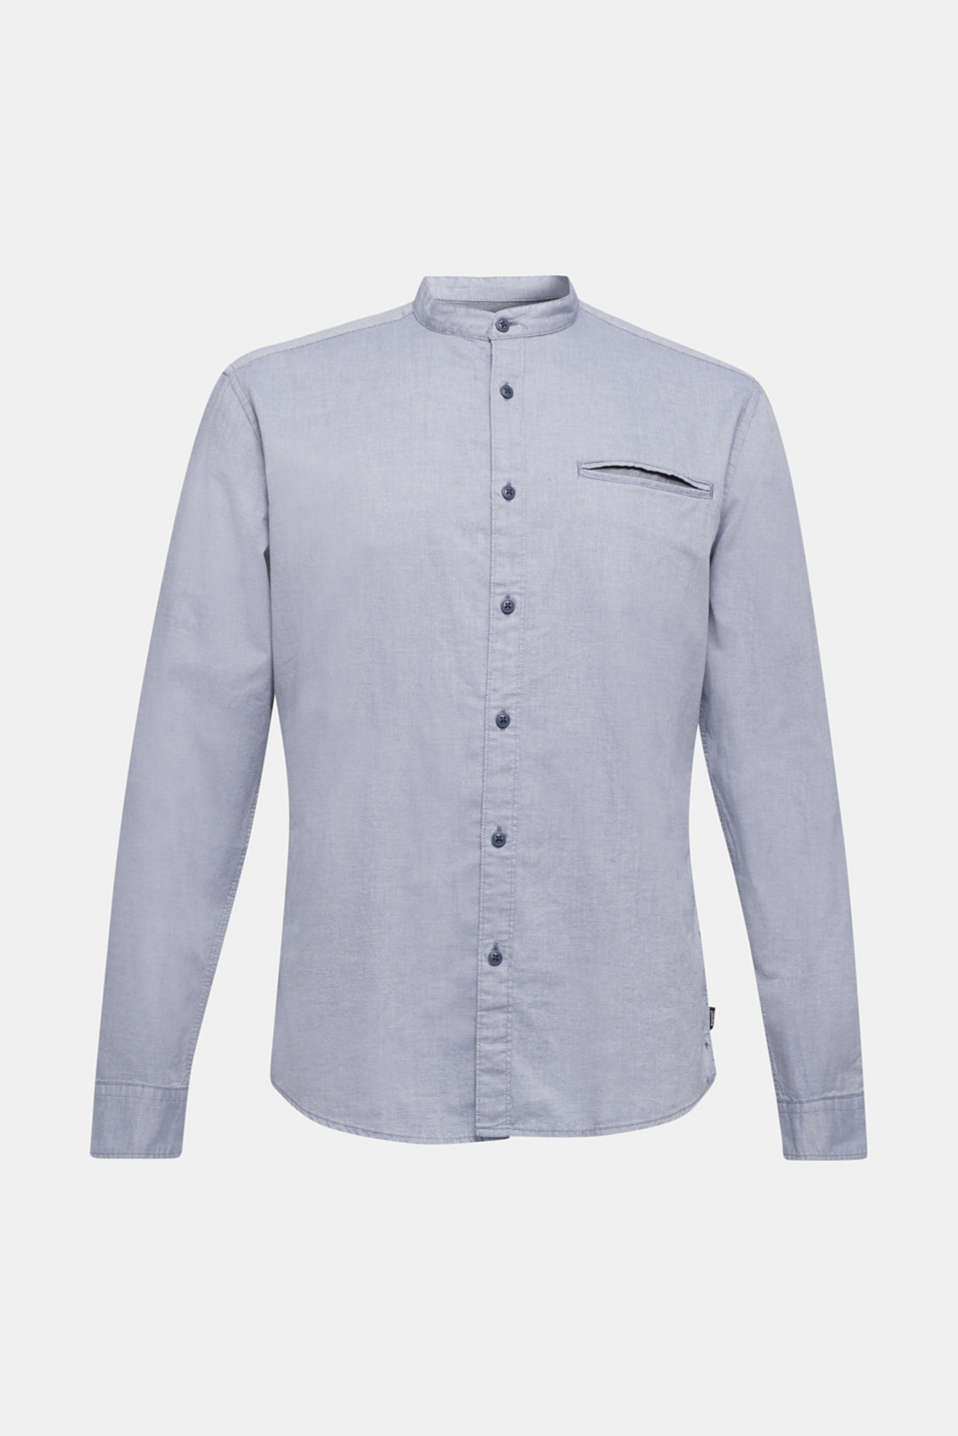 Shirts woven Slim fit, GREY BLUE 5, detail image number 7